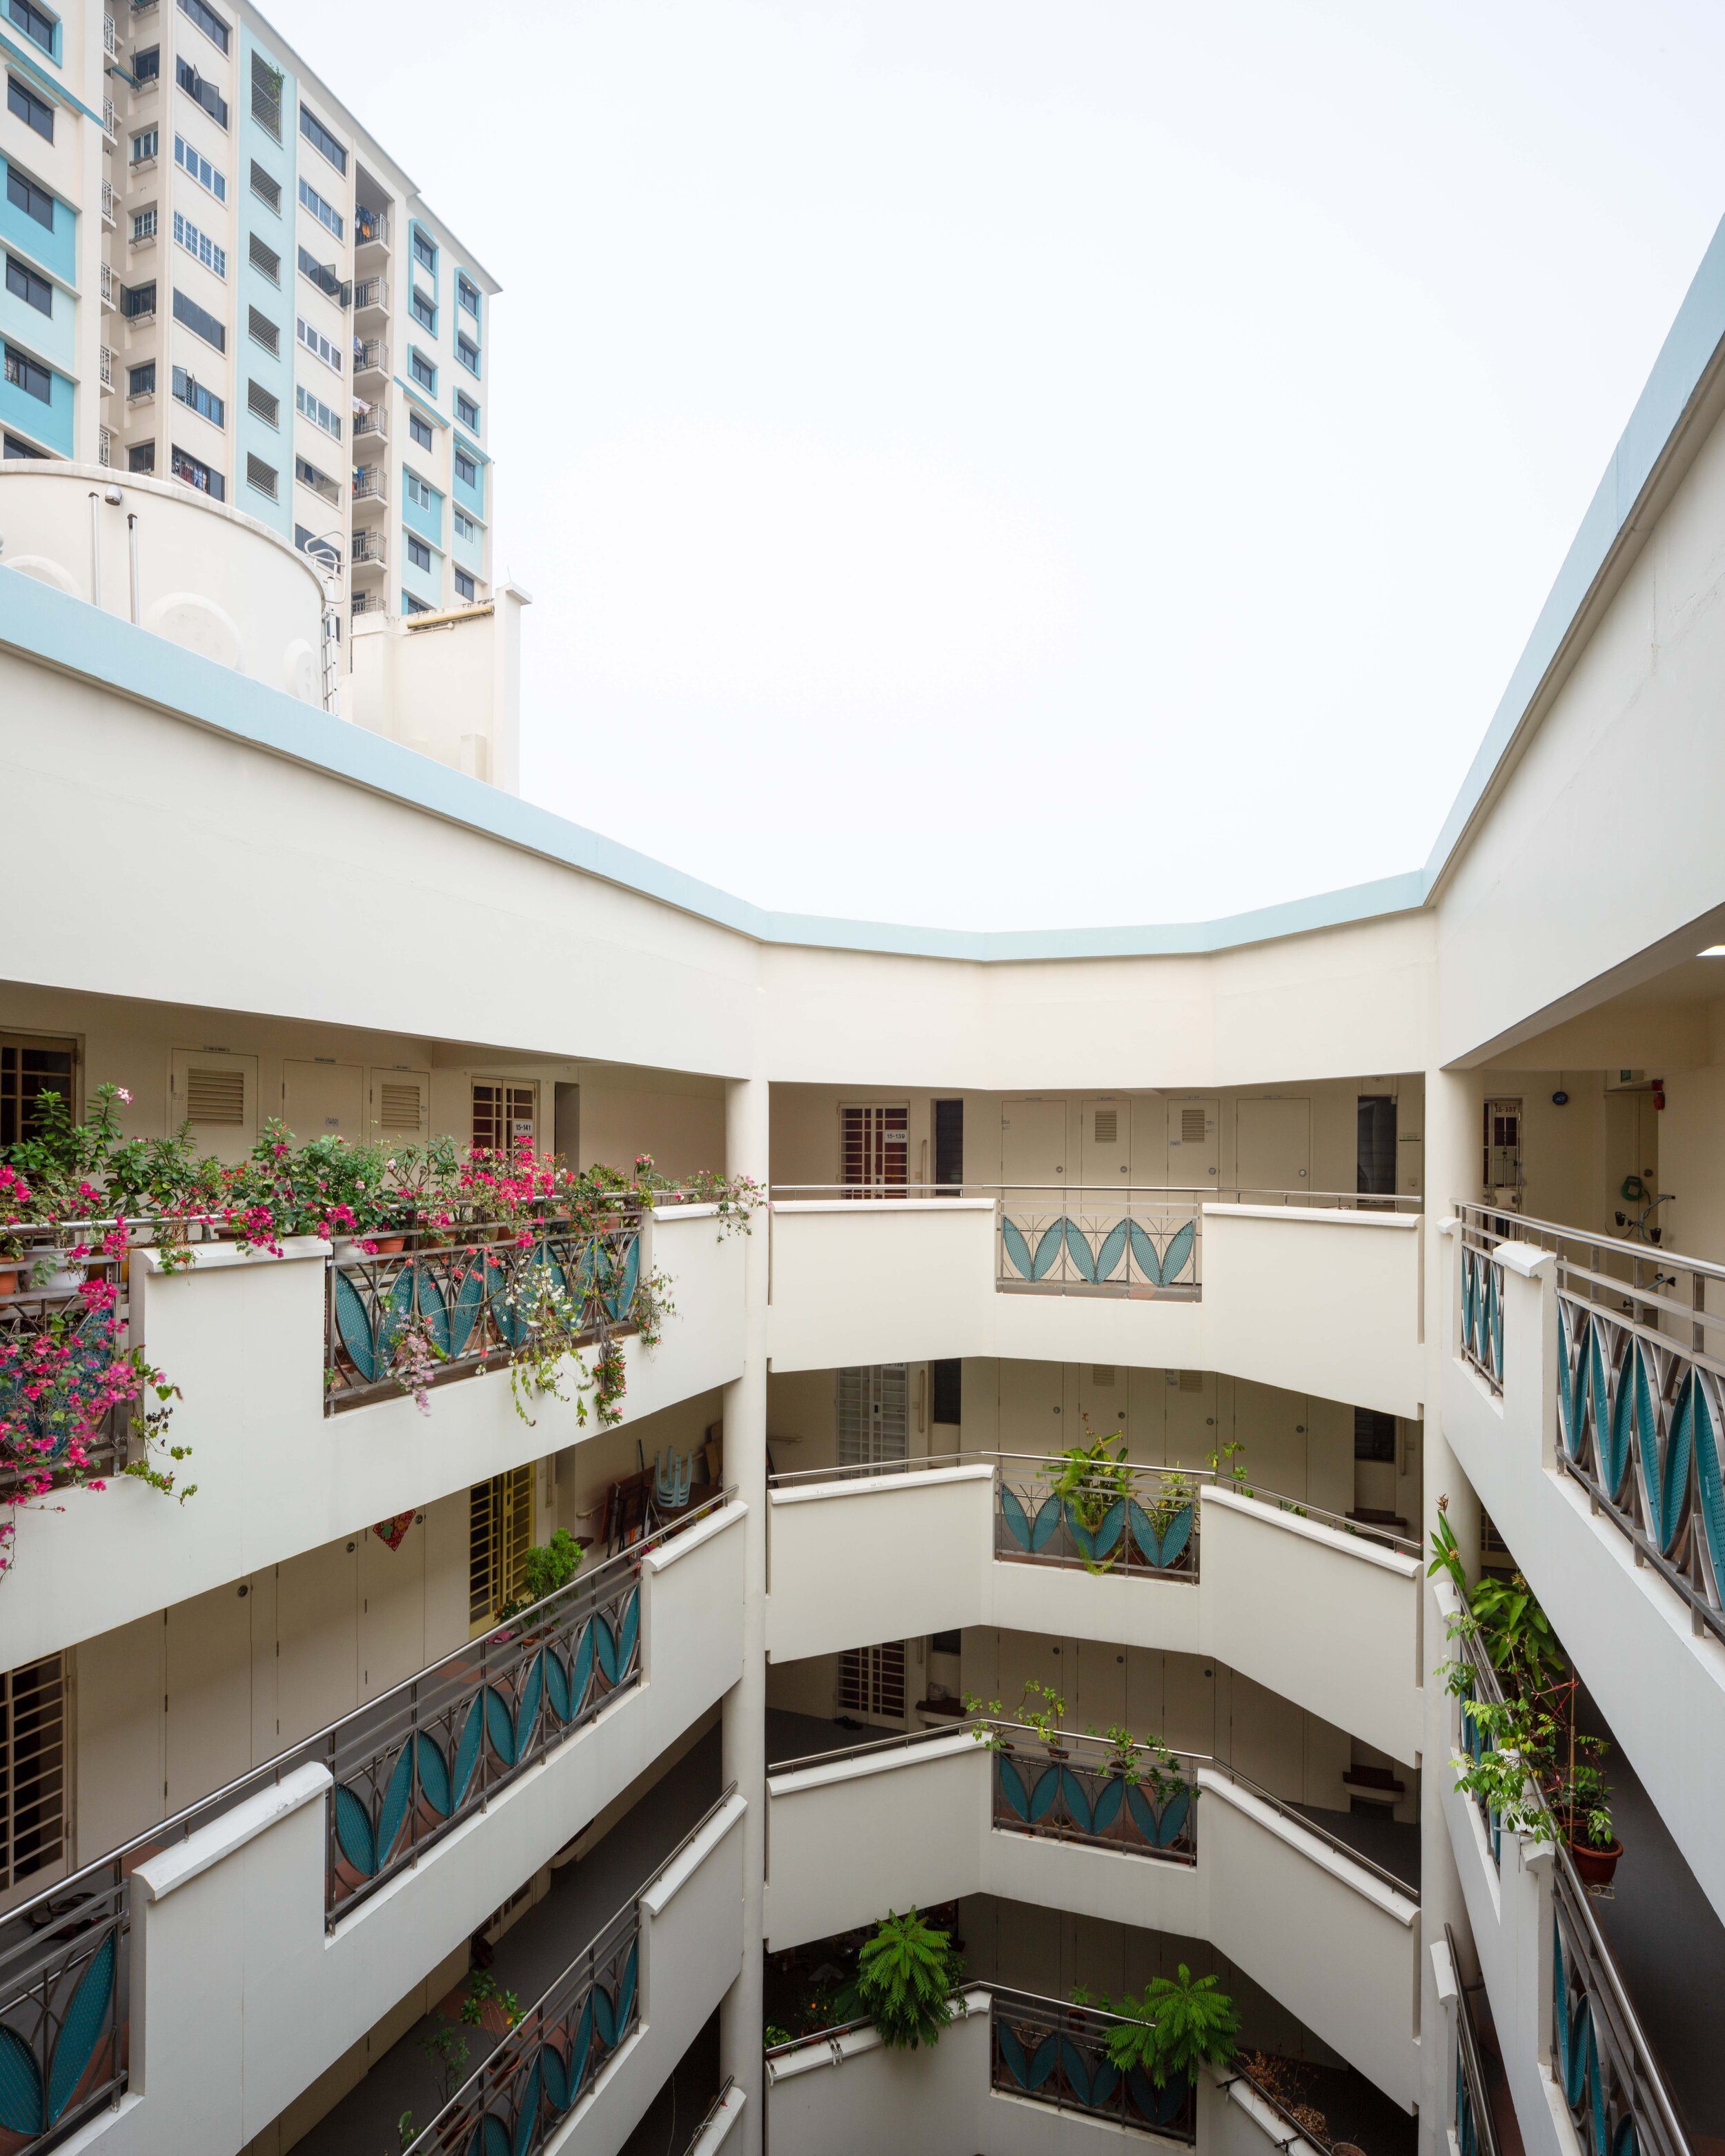 62B Lorong 4 Toa Payoh 190918 079, image by Andrew Campbell Nelson.jpg